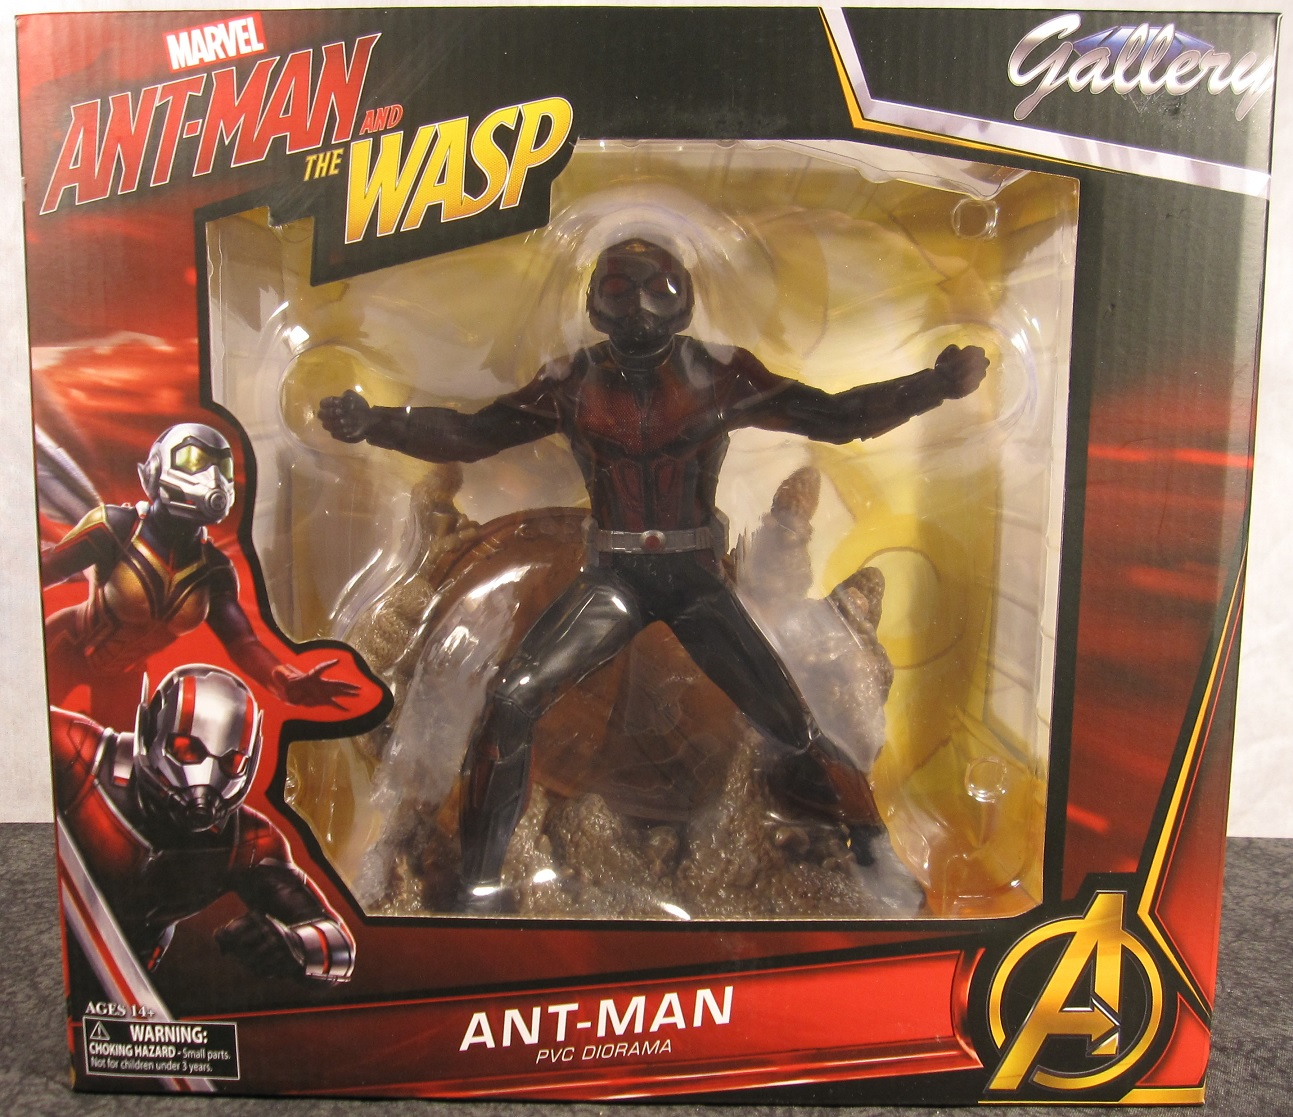 Marvel Gallery The Wasp Ant-man /& The Wasp